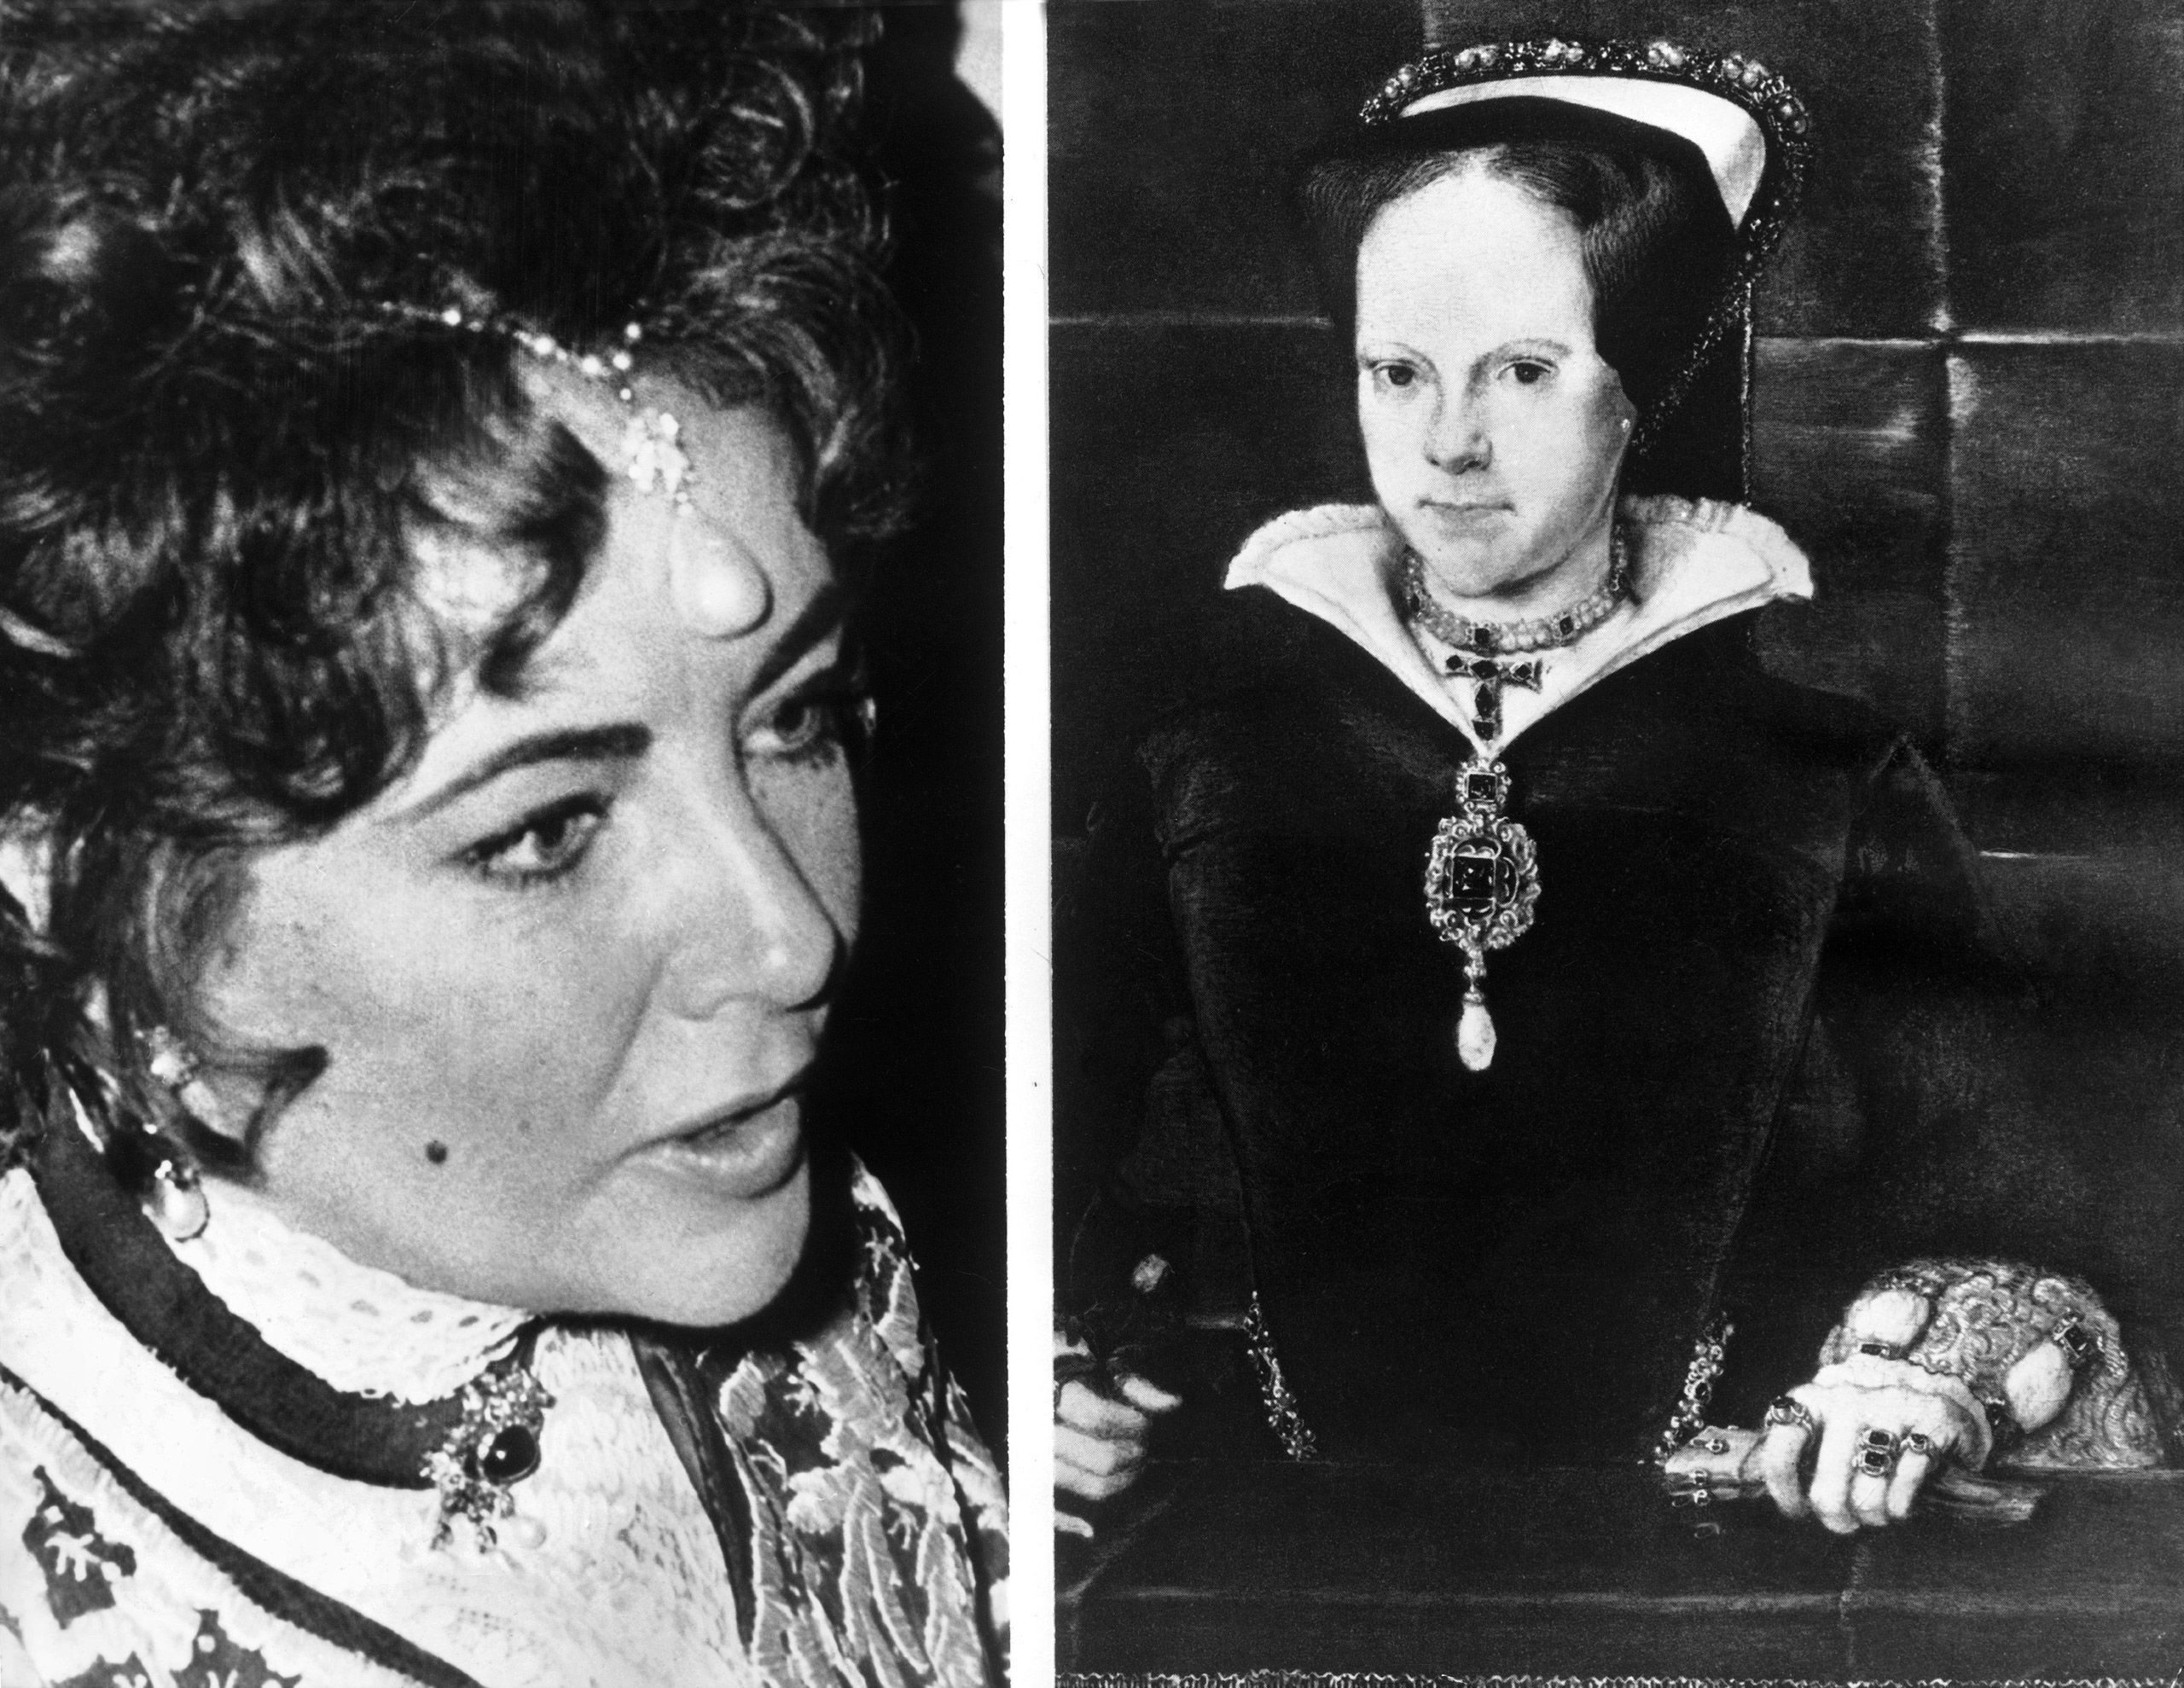 On November 9, 1971, while the painting by Hans Eworth (right) representing the Queen of England Mary Tudor is sold at Sotheby's in London, the American actress Elizabeth Taylor wears the Queen's pearls around her neck and on her forehead during a party in Paris. This jewel is named La Peregrina; Philip of Spain gave the pearl to Mary Tudor in 1554.